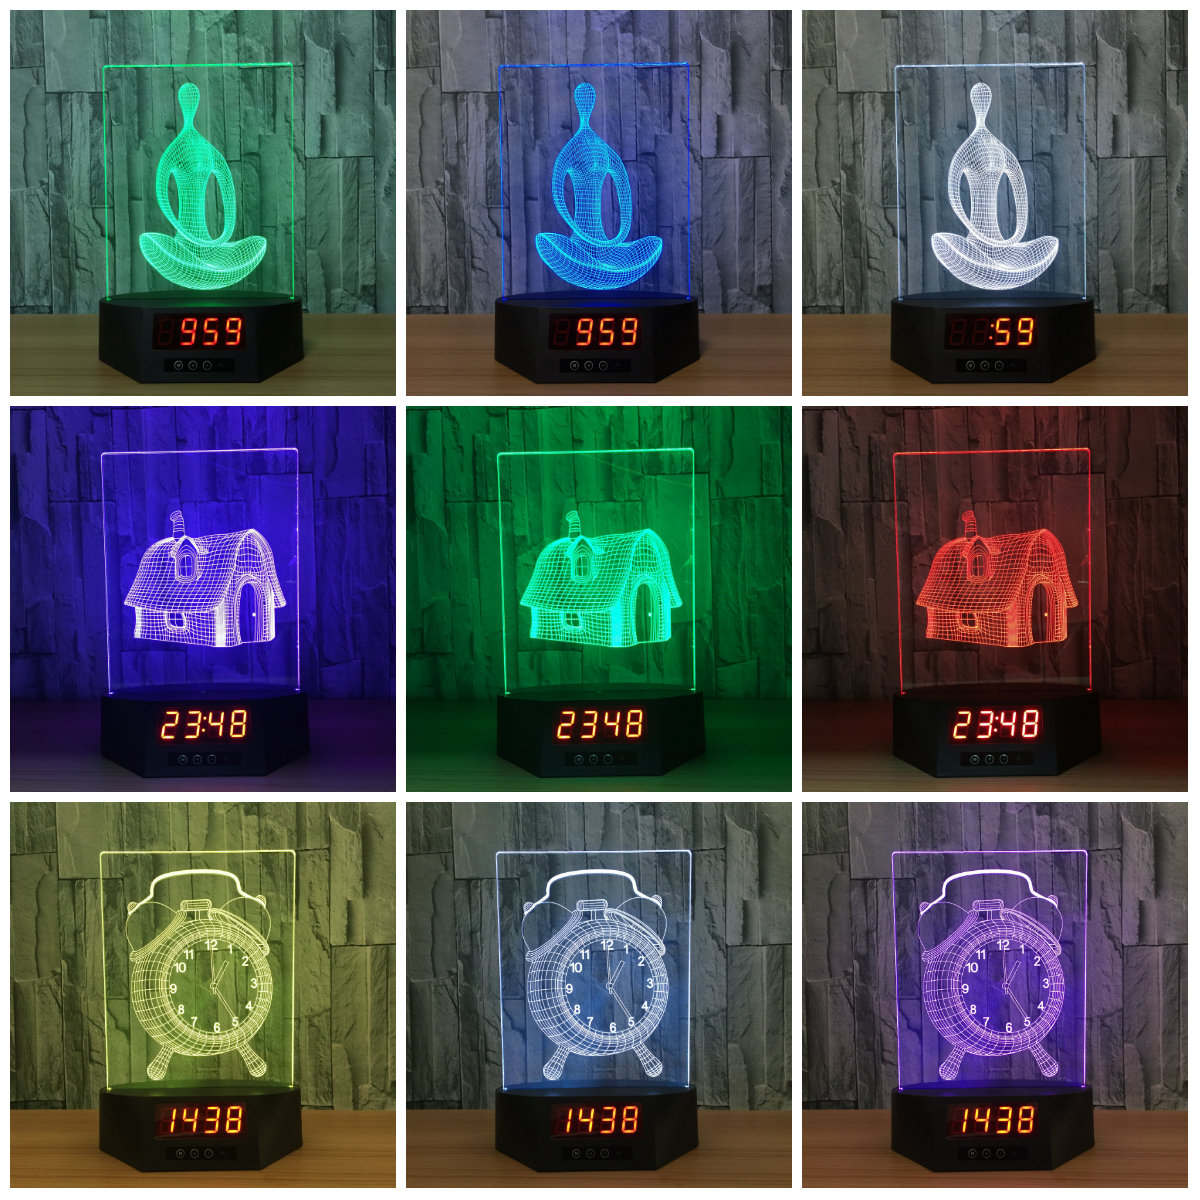 Yoga House Clock Table Lamp 7 Colors Changing Desk Lamp 3D Lamp Novelty Led Night Lights LED Light Drop Ship LED Gift IY803991 usb novelty gifts 7 colors changing animal horse led night lights 3d led desk table lamp as home decoration